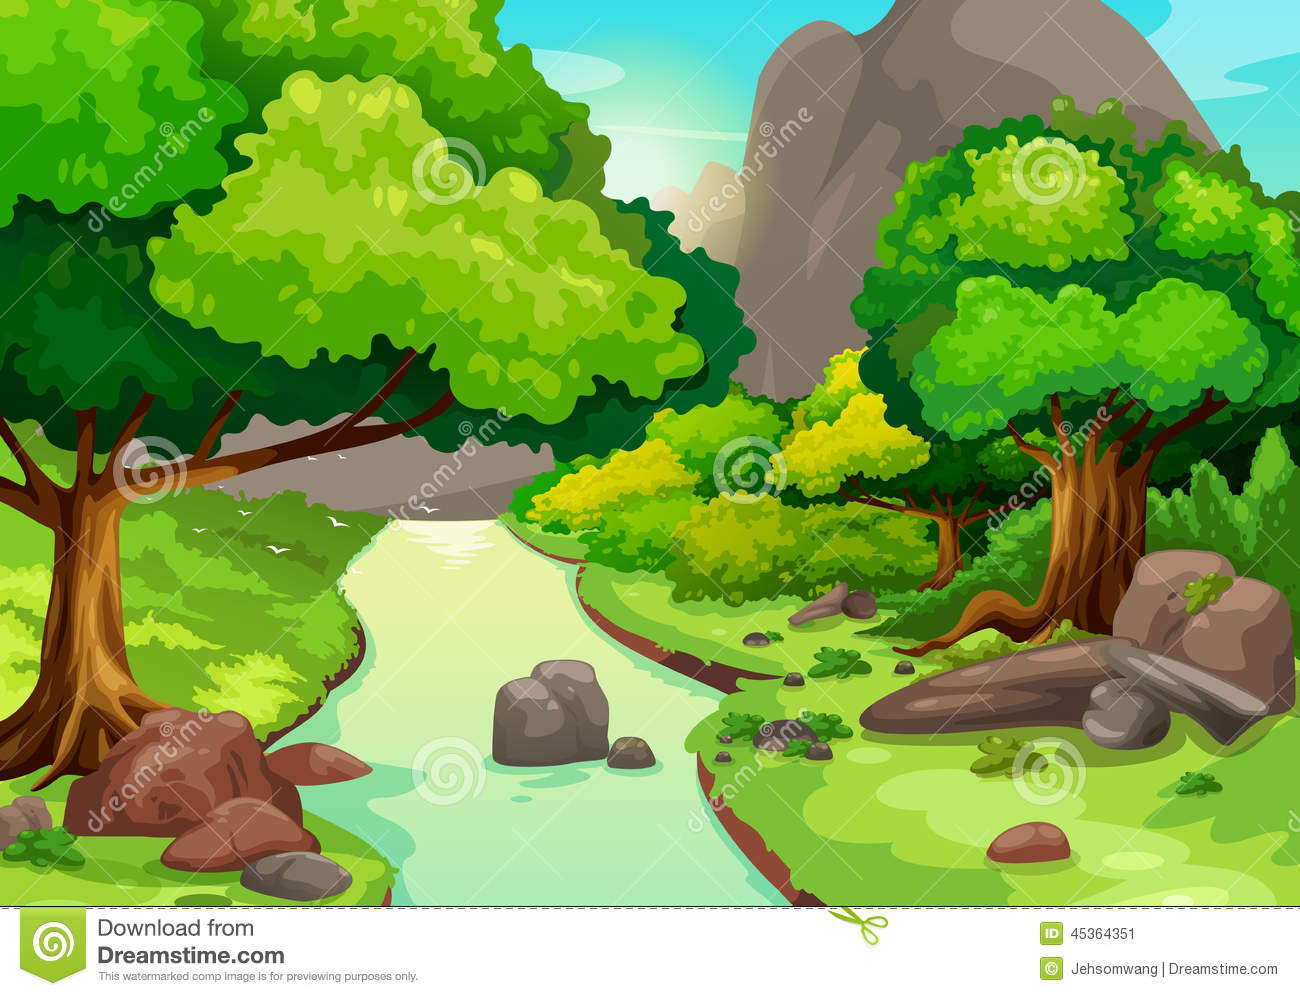 River background clipart image download Forest With A River Background Stock Vector - Image: 44637656 image download